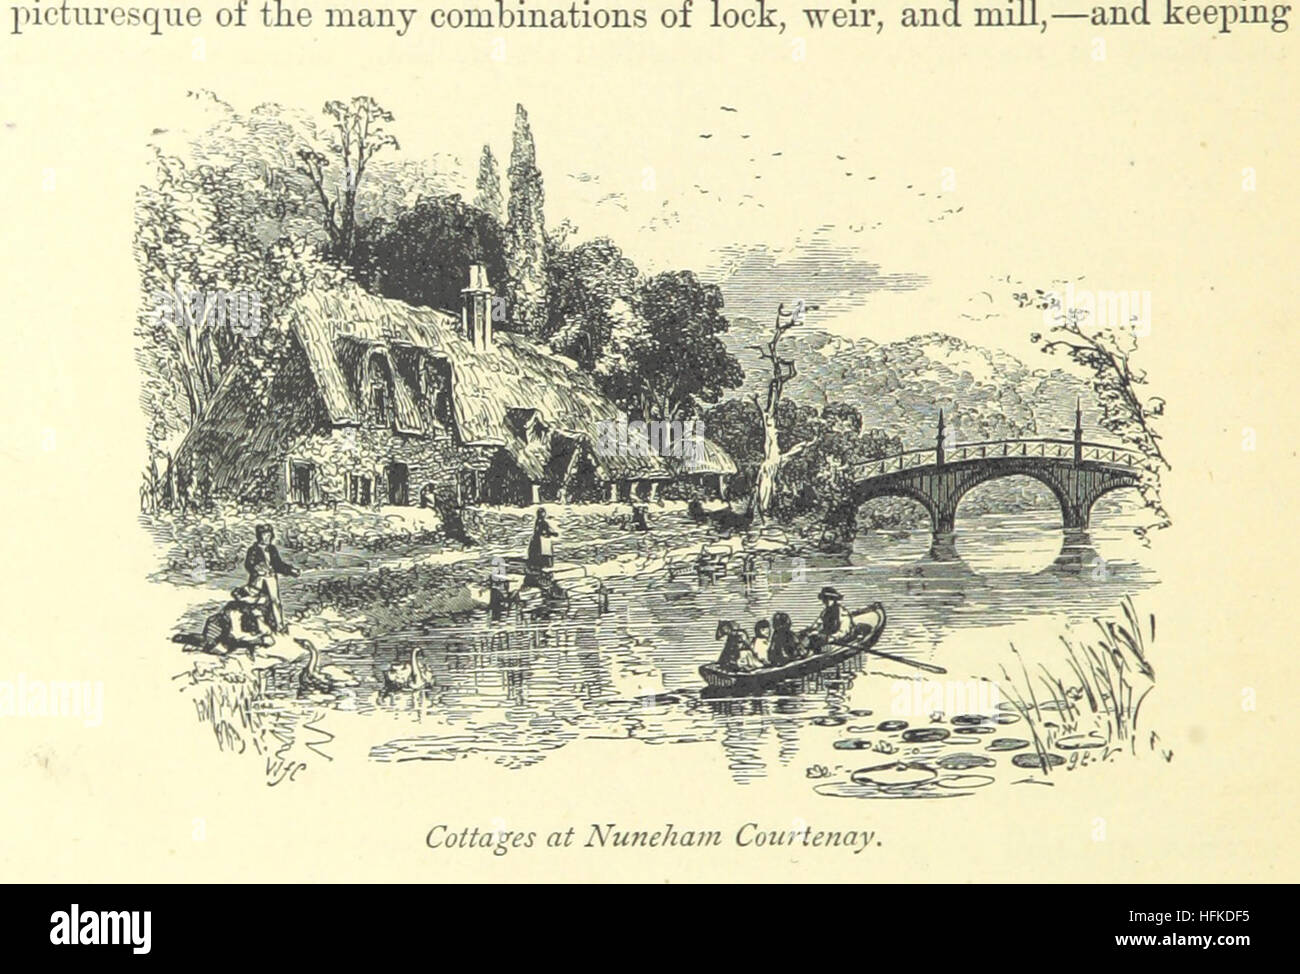 Image taken from page 122 of '[The book of the Thames.]' Image taken from page 122 of '[The book of - Stock Image